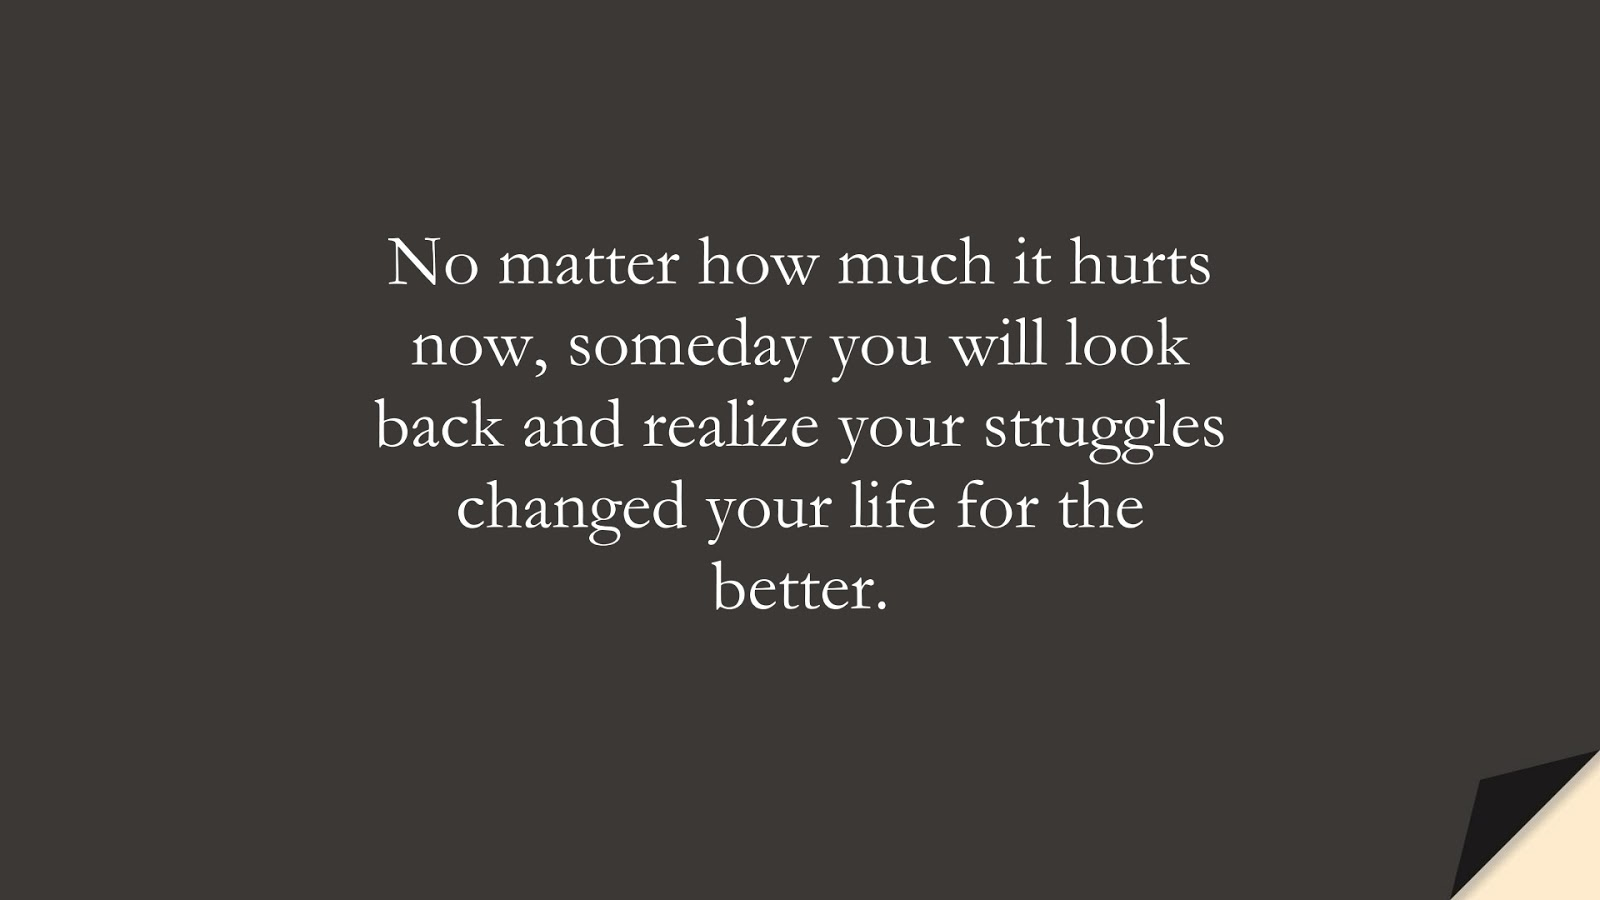 No matter how much it hurts now, someday you will look back and realize your struggles changed your life for the better.FALSE